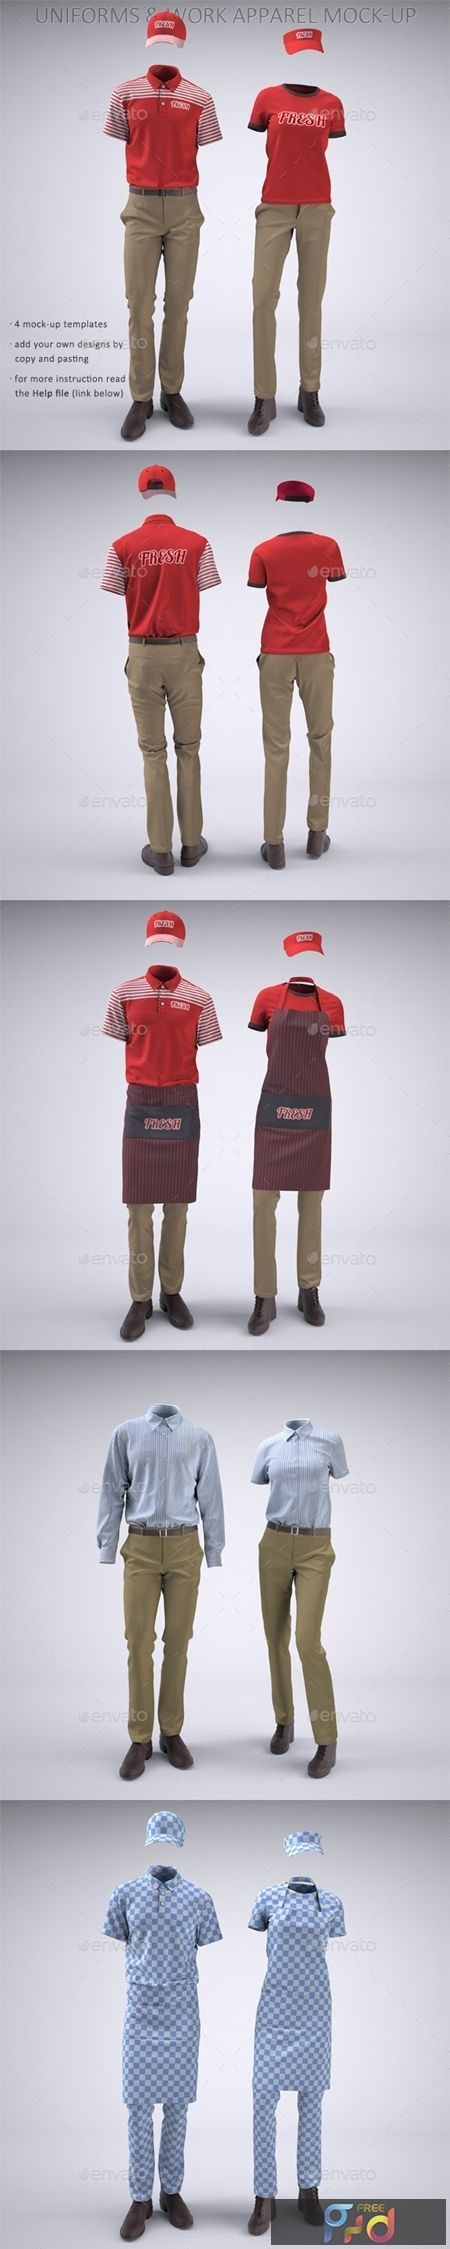 Food Service Uniforms And Retail Uniforms Mock Up 22094416 Freepsdvn In 2021 Clothing Mockup Food Service Uniforms Clothing Templates